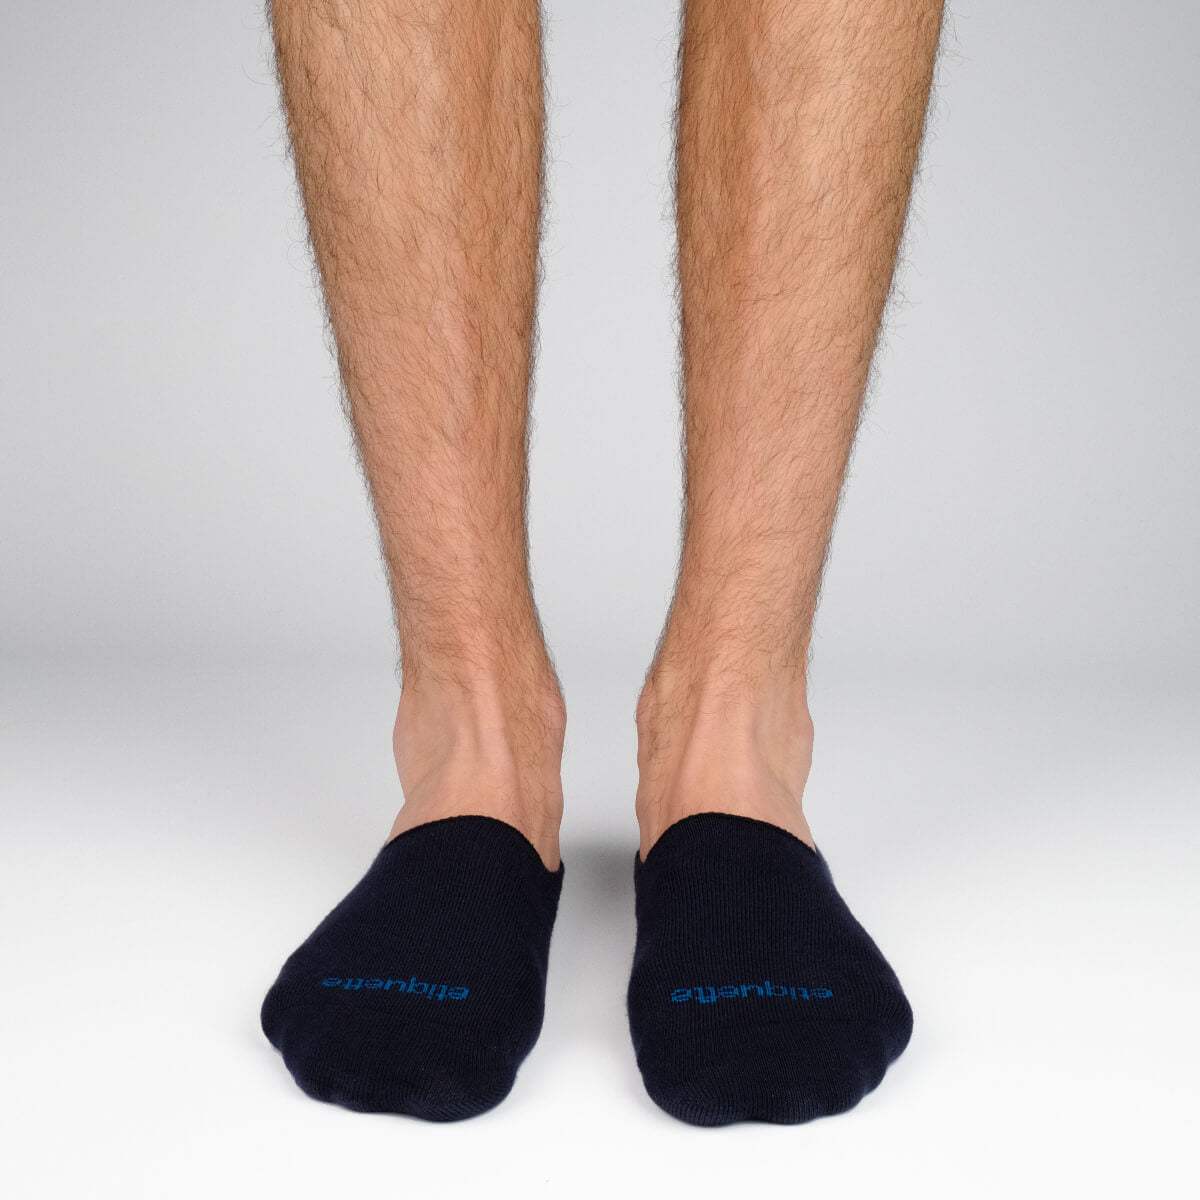 Mens Socks - Men's No Show Socks 3 Pack - Dark Blue⎪Etiquette Clothiers